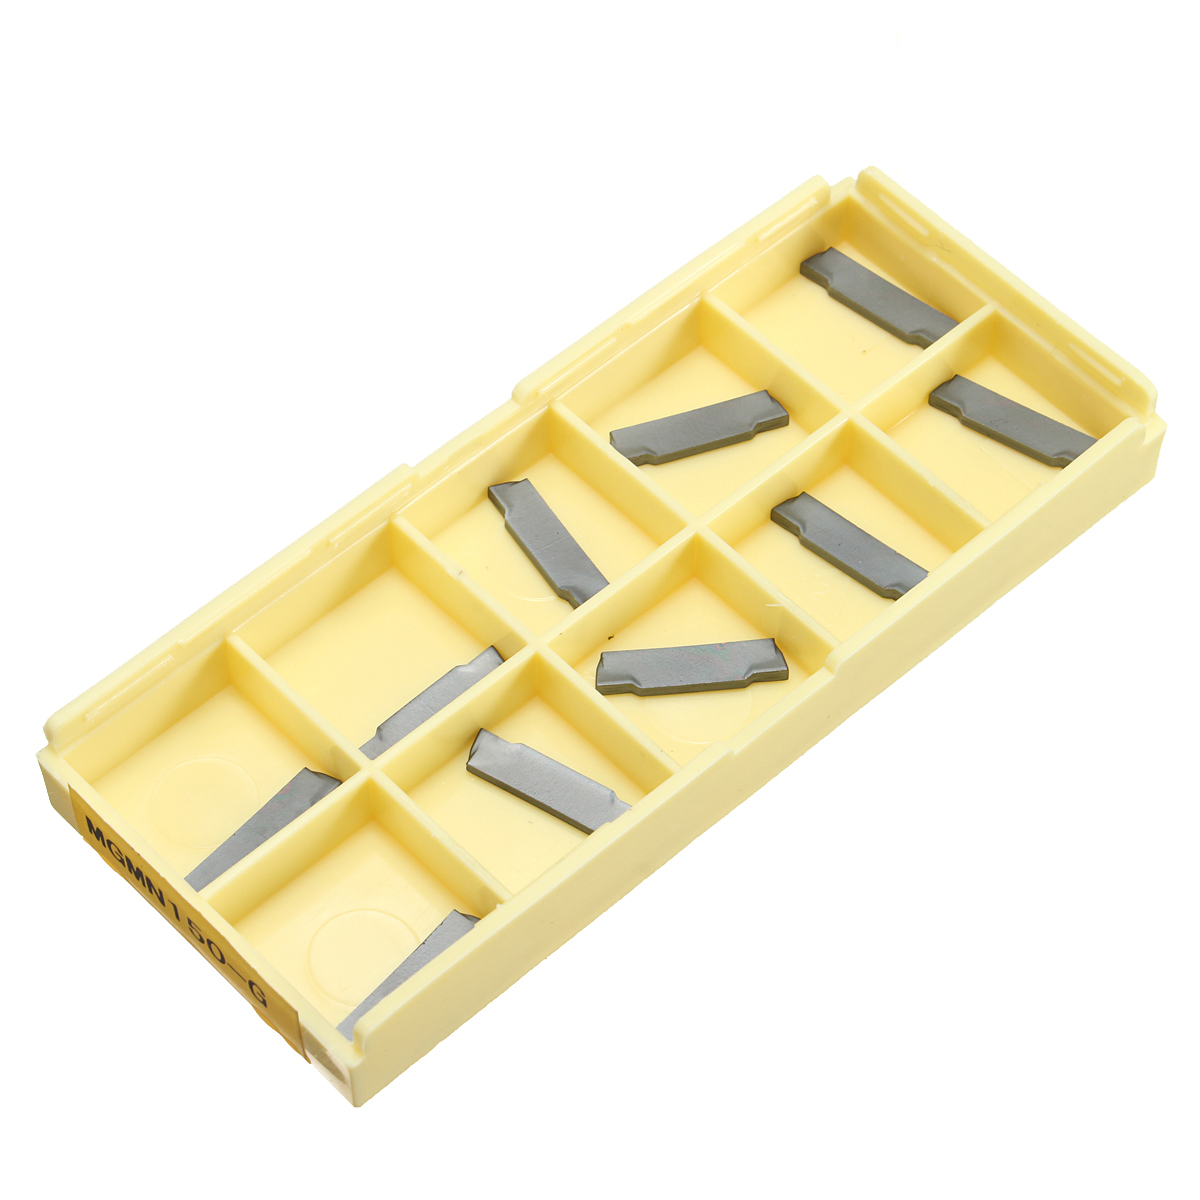 Drillpro 10pcs MGMN150-G 1.5mm CNC Lathe Grooving Carbide Blades Cutting Insert,Tungsten steel